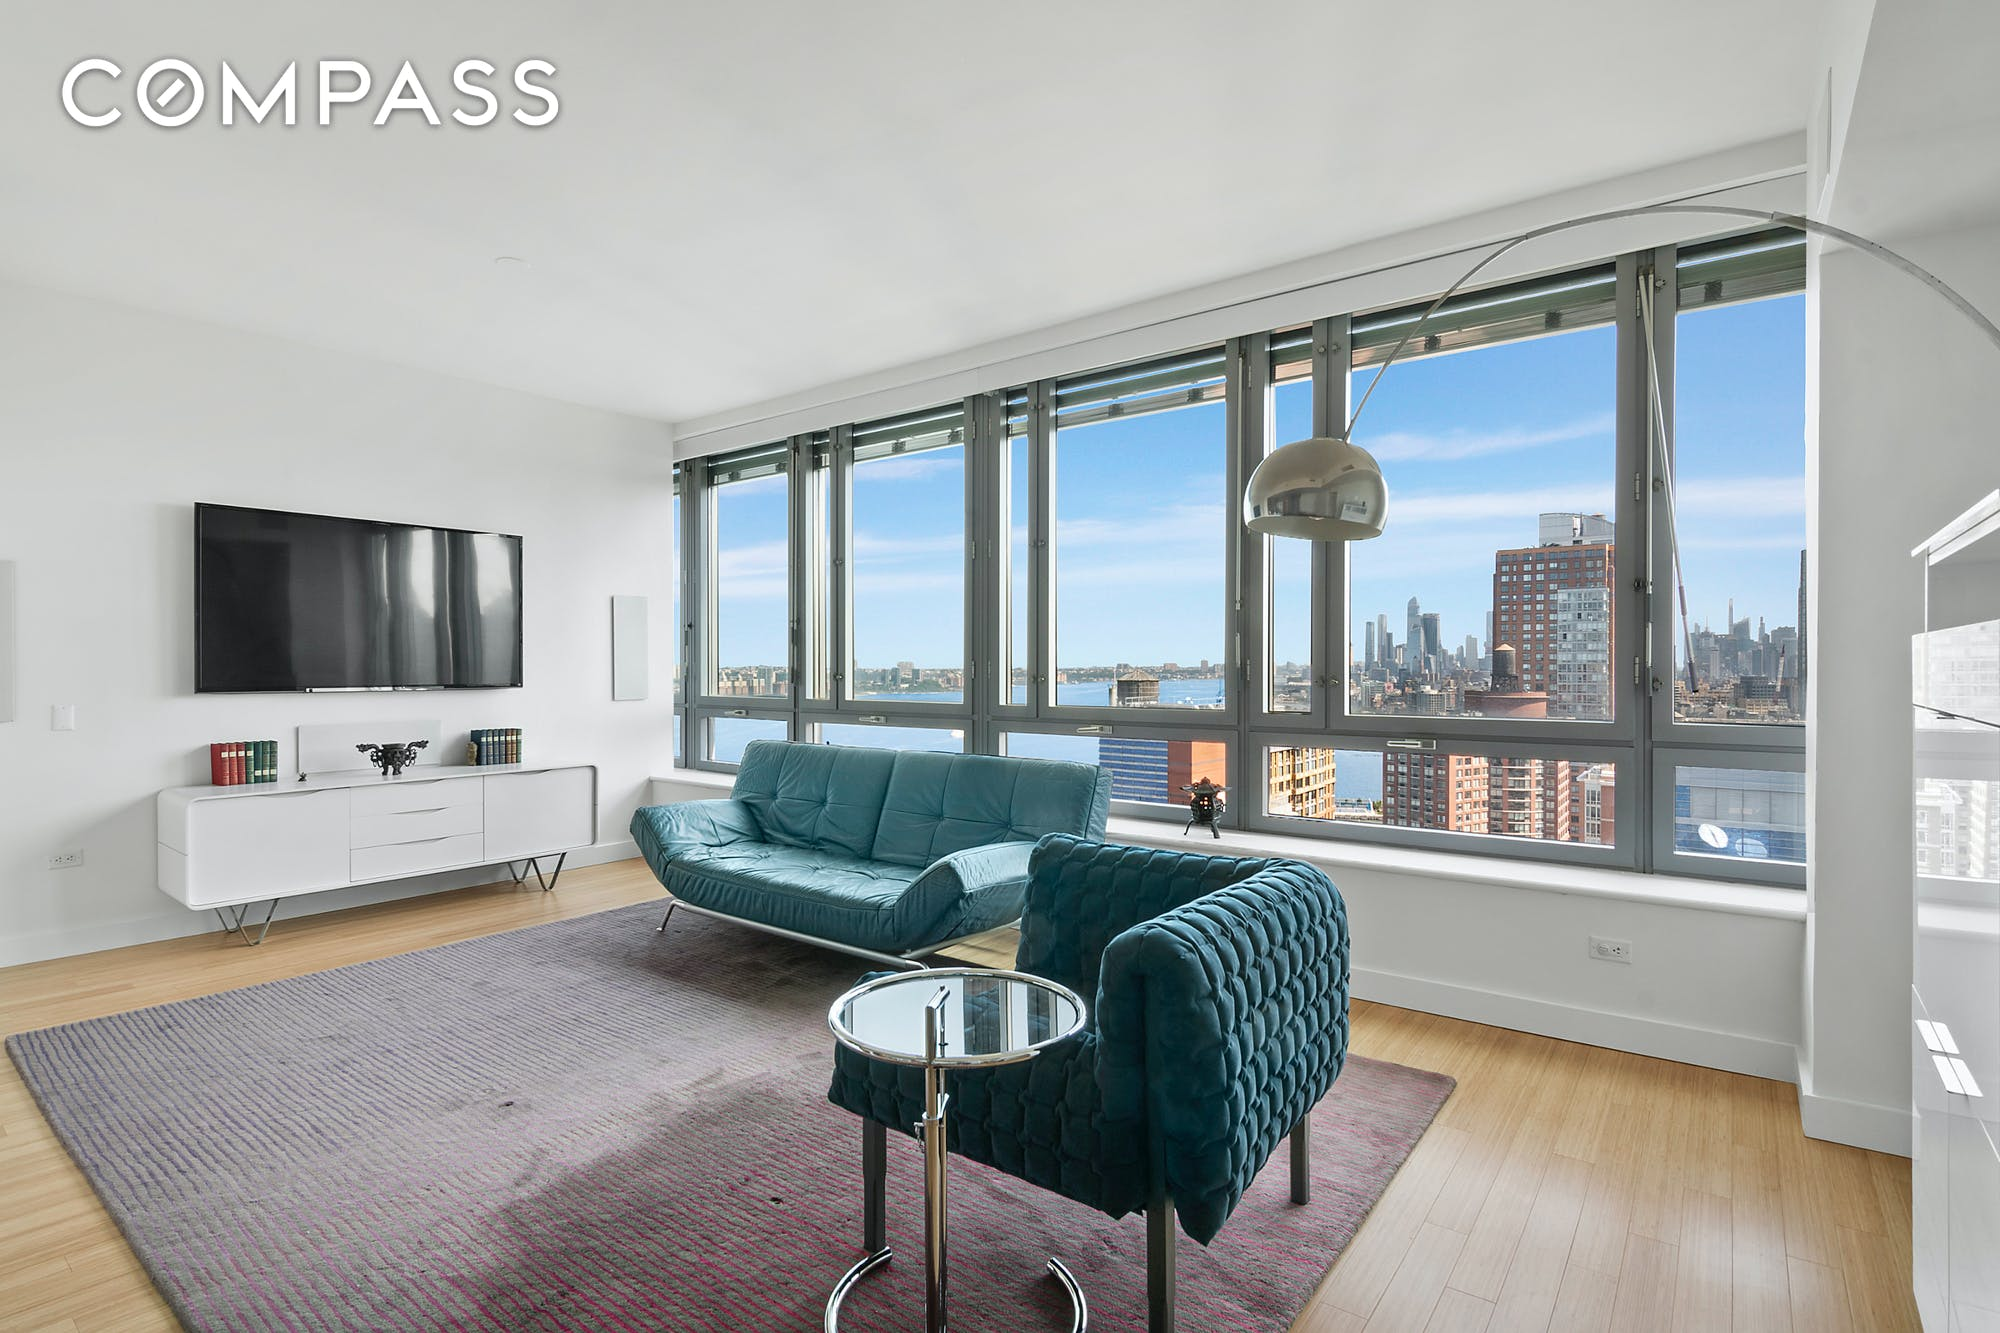 PENTHOUSE with JAW-DROPPING VIEWS at RIVERHOUSE  This expansive 1,100 square foot 1-bedroom 2-bathroom penthouse at the LEED Gold certified RIVERHOUSE is truly unmatched. The combination of open unobstructed PROTECTED views of the East River, Hudson Yards and Midtown are a rare find and some of the absolute best in New York.  On entering the apartment, you're immediately struck with the views and the amount of light streaming through the wall of windows that span across the entire length of the living room, which can only be found in the penthouse units of the building.  The impressive living room with a separate dining corner allows for flexible entertaining and dining configurations. The David Rockwell-designed kitchen includes Corian countertops, teak cabinetry, Sub-Zero and Bosch appliances and an in-suite washer and dryer. The oversized bedroom offers three closets and a four-piece bathroom with a wall of glass framing the same insane views. A second full bathroom completes this extraordinary apartment.  RIVERHOUSE is one of only a handful of LEED Gold certified condominiums in New York City where residents enjoy twice filtered air, filtered water, non-toxic materials and lower energy costs. The impressive amenities include on-site parking, gym with a yoga studio, 50' lap pool, playroom, billiards room, media cafe, and a lush second floor landscaped garden. Steps away from Rockefeller Park, Brookfield Place, Teardrop Park, Hudson River Esplanade, the Oculus, Eataly and Tribeca's culinary delights, the location offers some of the best dining and shopping options in New York.